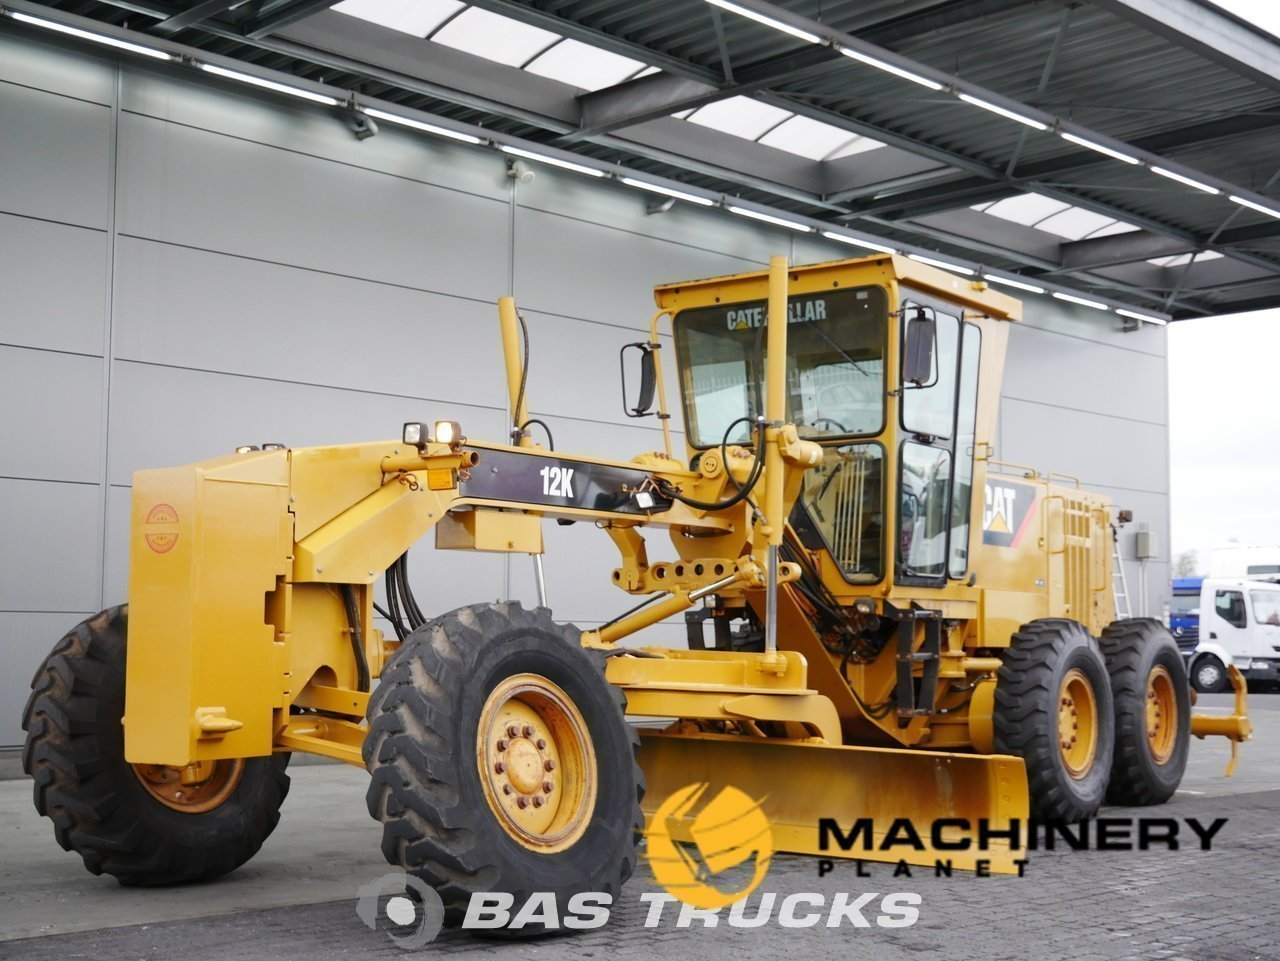 Used-Construction-equipment-Caterpillar-12K-6X4-2011_138117_1-1553937025889_5c9f3281d9224-1.jpg